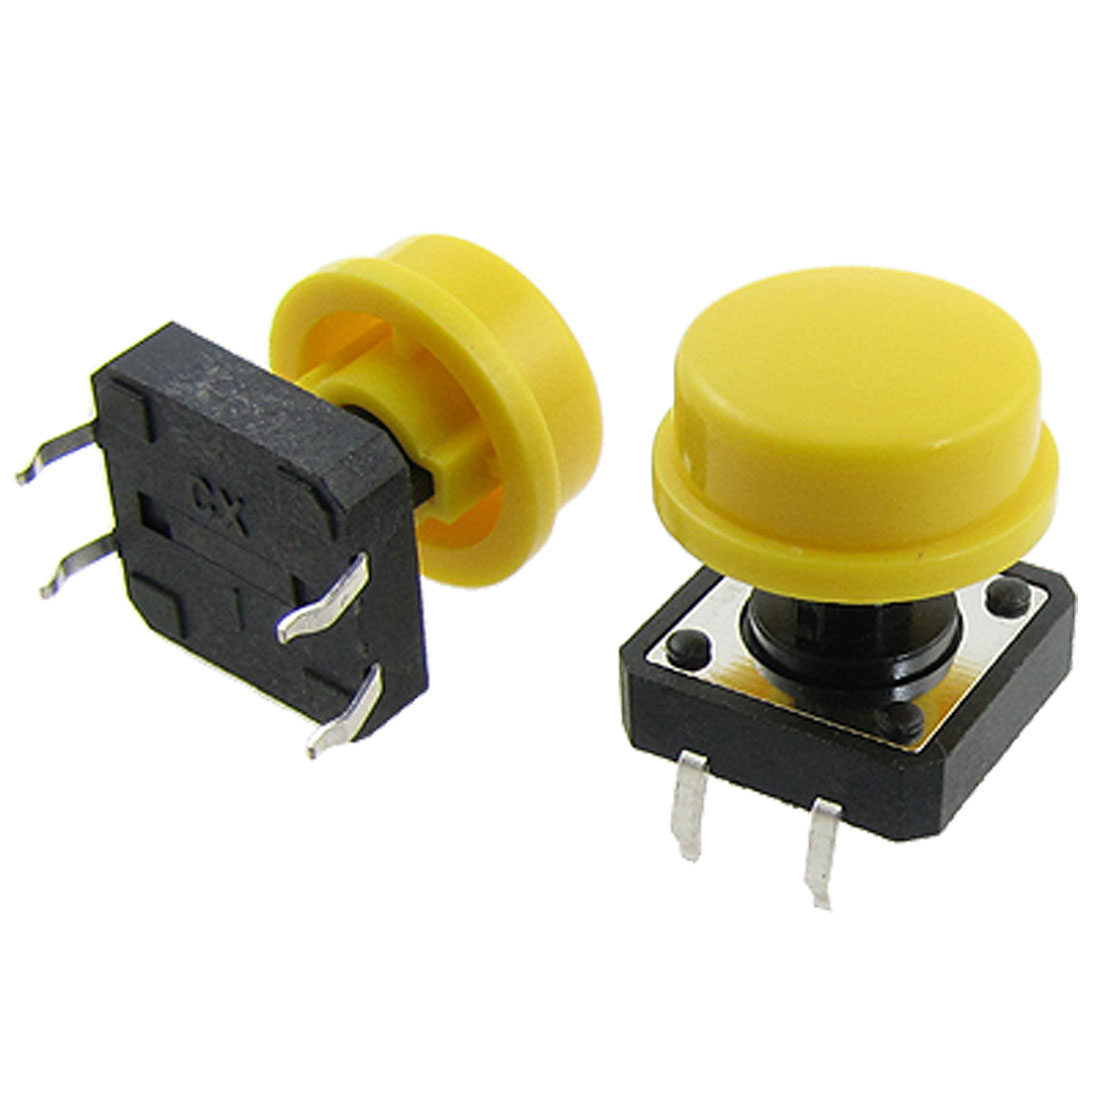 10 Pcs 12 x 12mm x 15mm Momentary Push Button Tactile Tact Switch w Yellow Round Cap